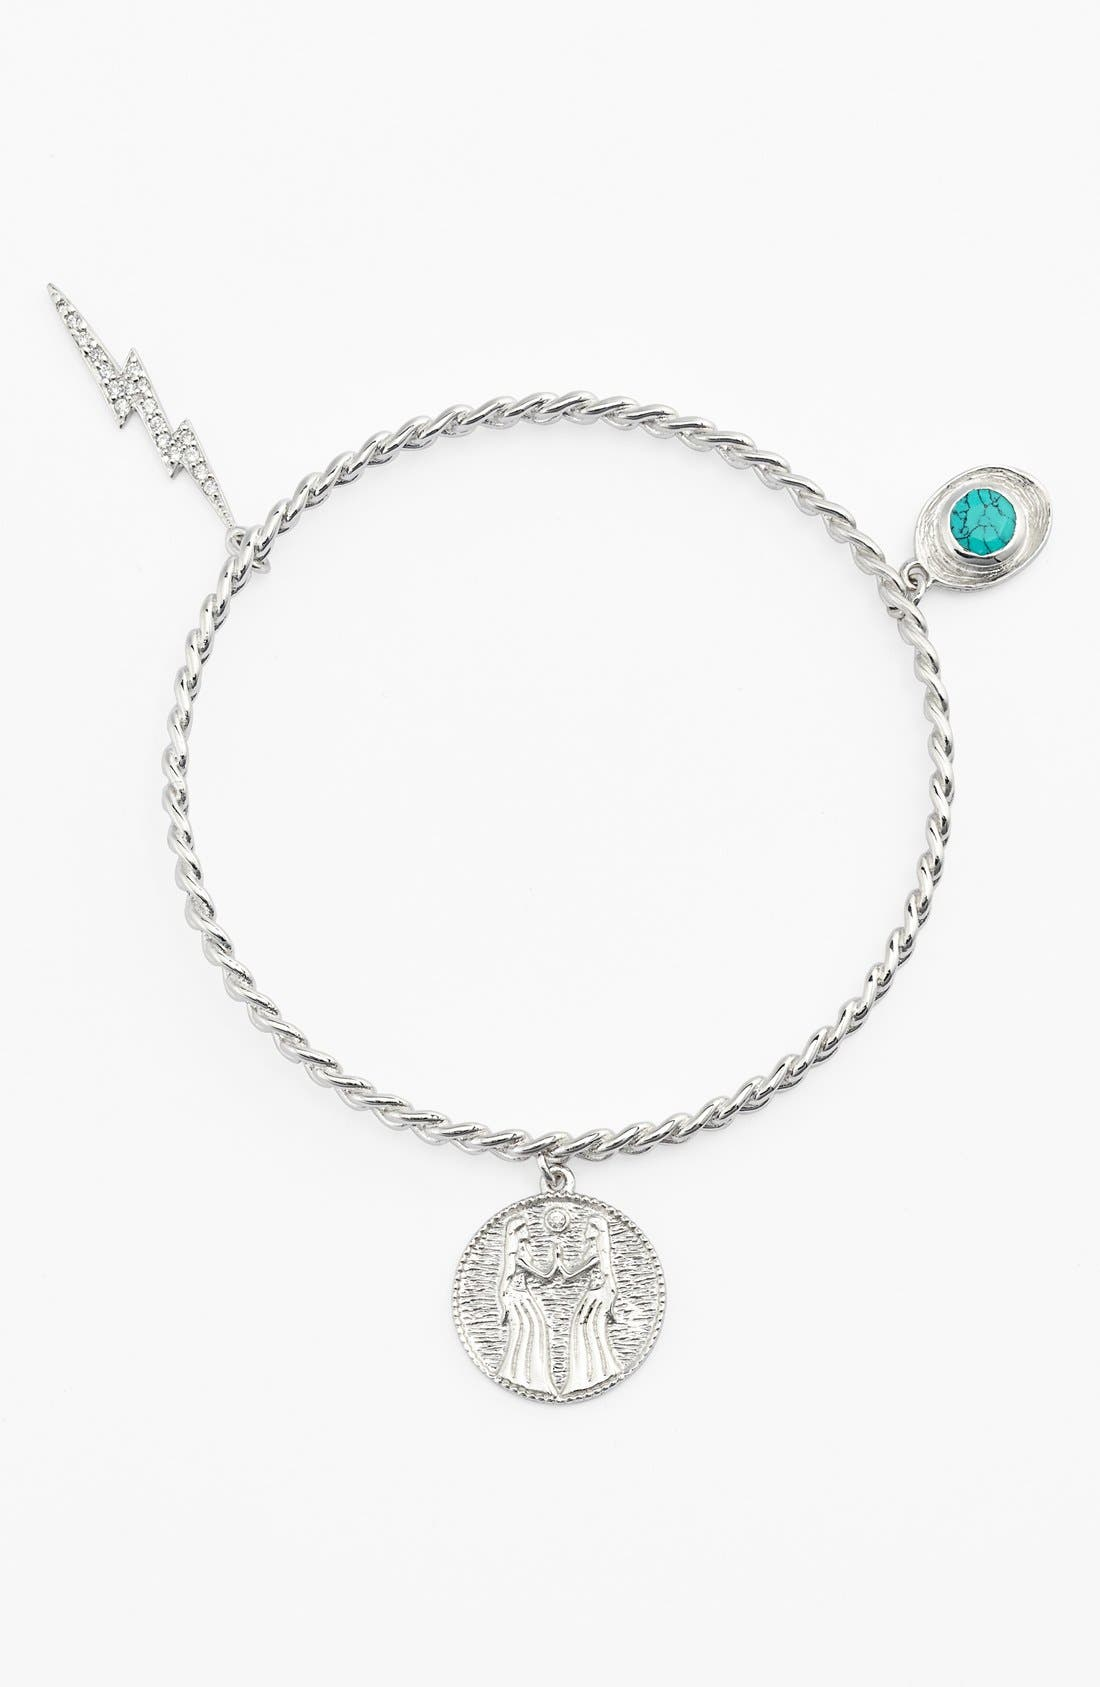 Main Image - Melinda Maria 'Goddess of Sisterhood' Charm Bangle